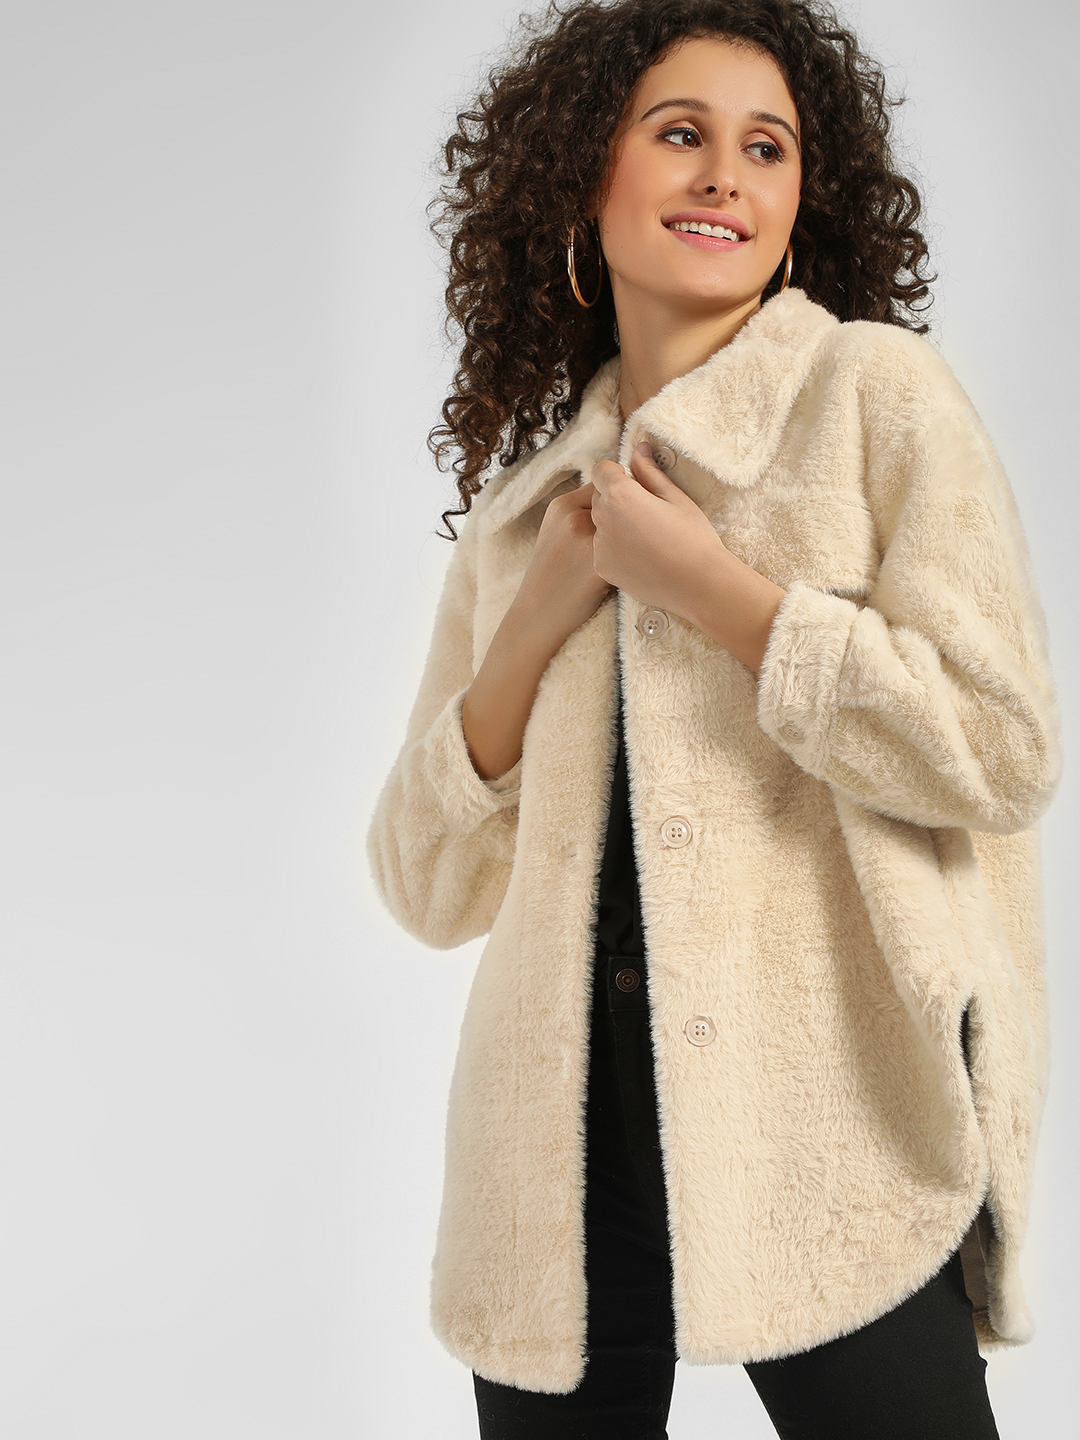 Origami Lily Off White Faux Shearling Jacket 1